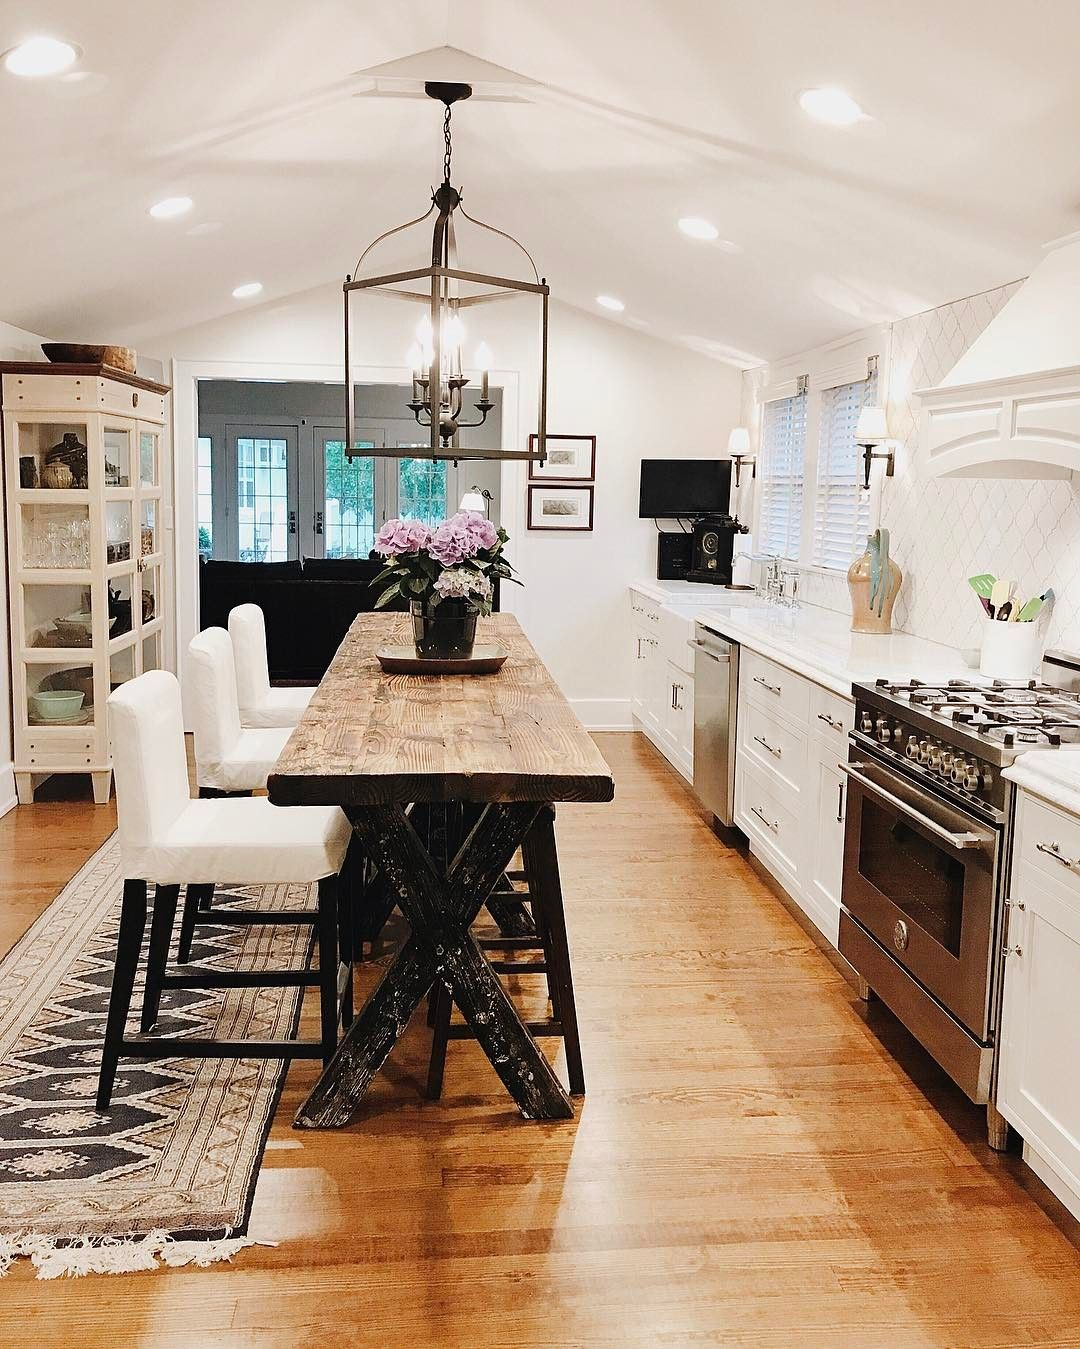 48 kitchen island tall kitchen 5709 likes 48 comments liz marie blog lizmariegalvan on instagram pin by josje meut101 interior design in 2018 home kitchen